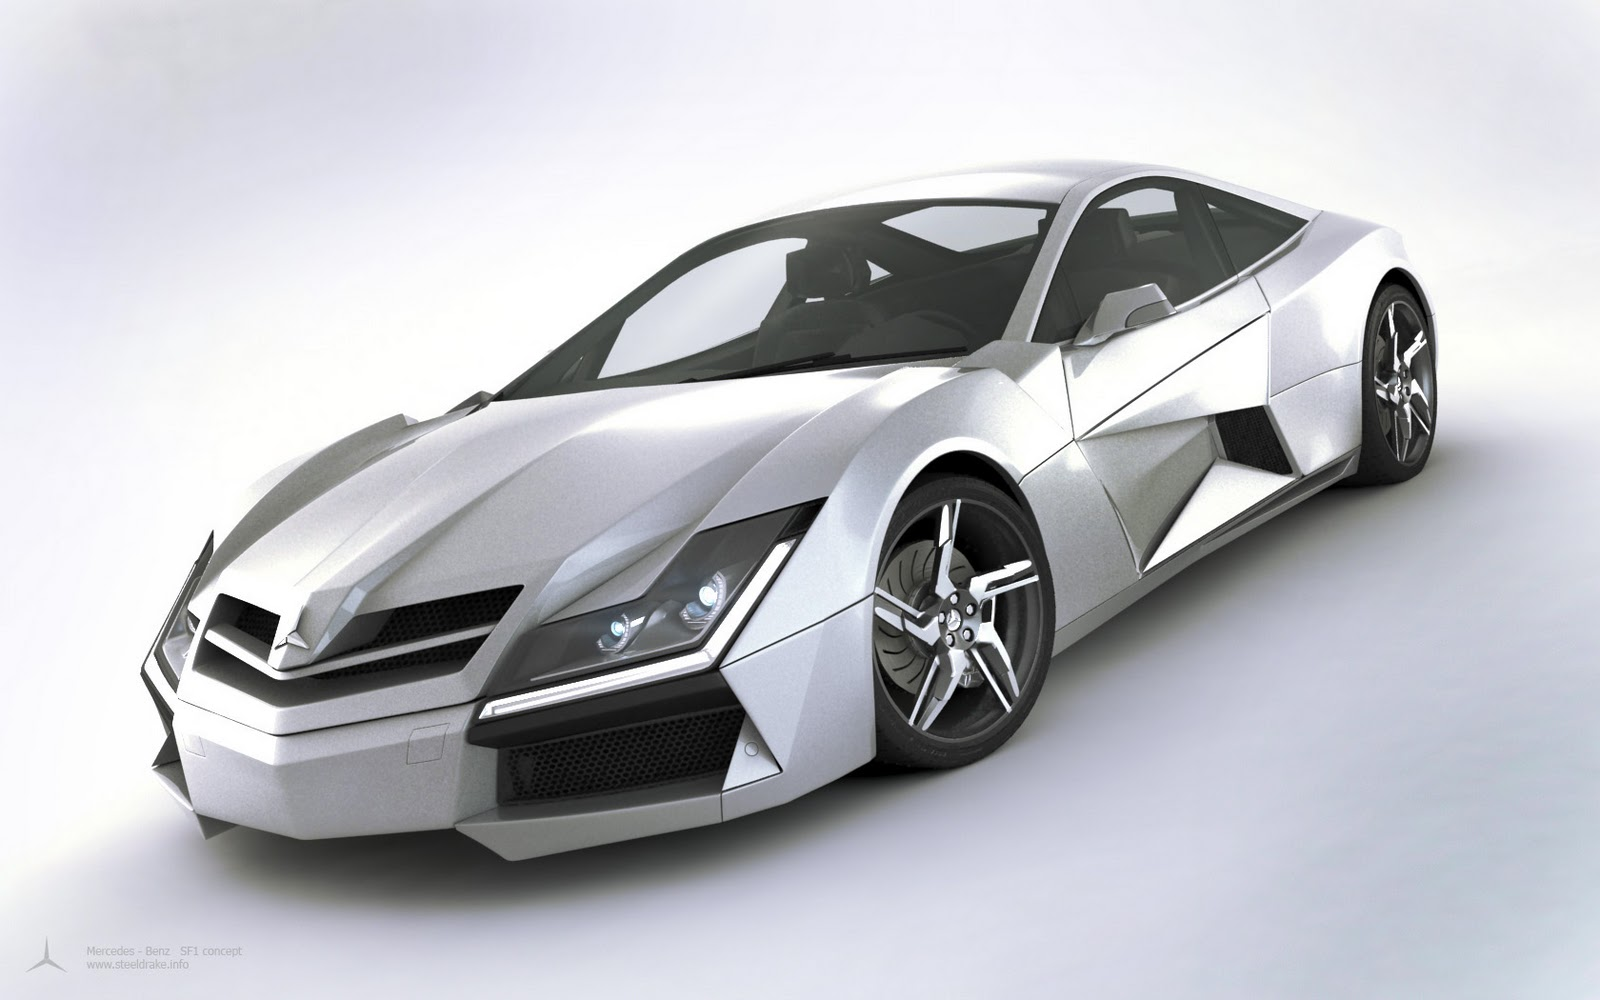 Super punch mercedes benz sf1 concept car for Mercedes benz cars pictures